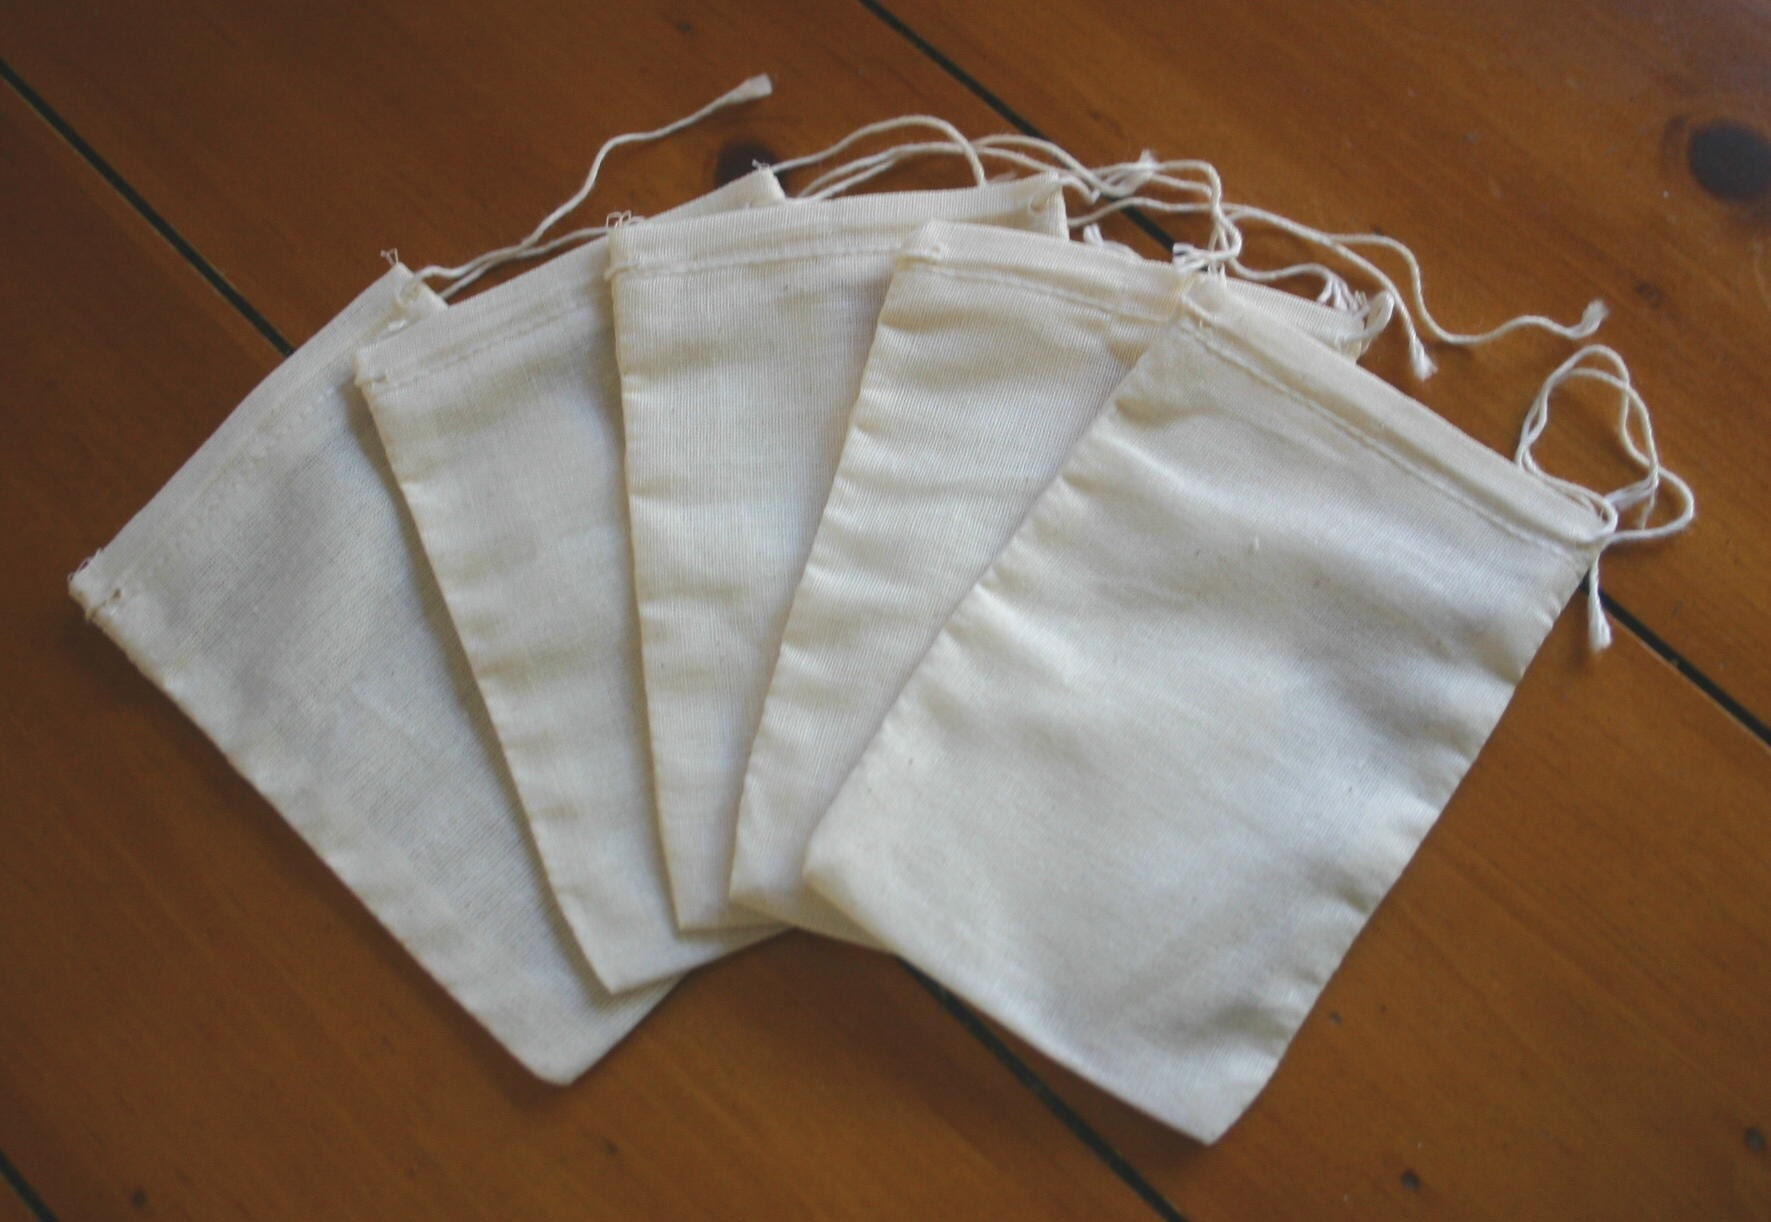 Cotton Muslin Bags Small Unbleached w/ Drawstring 5 PACK TEAS